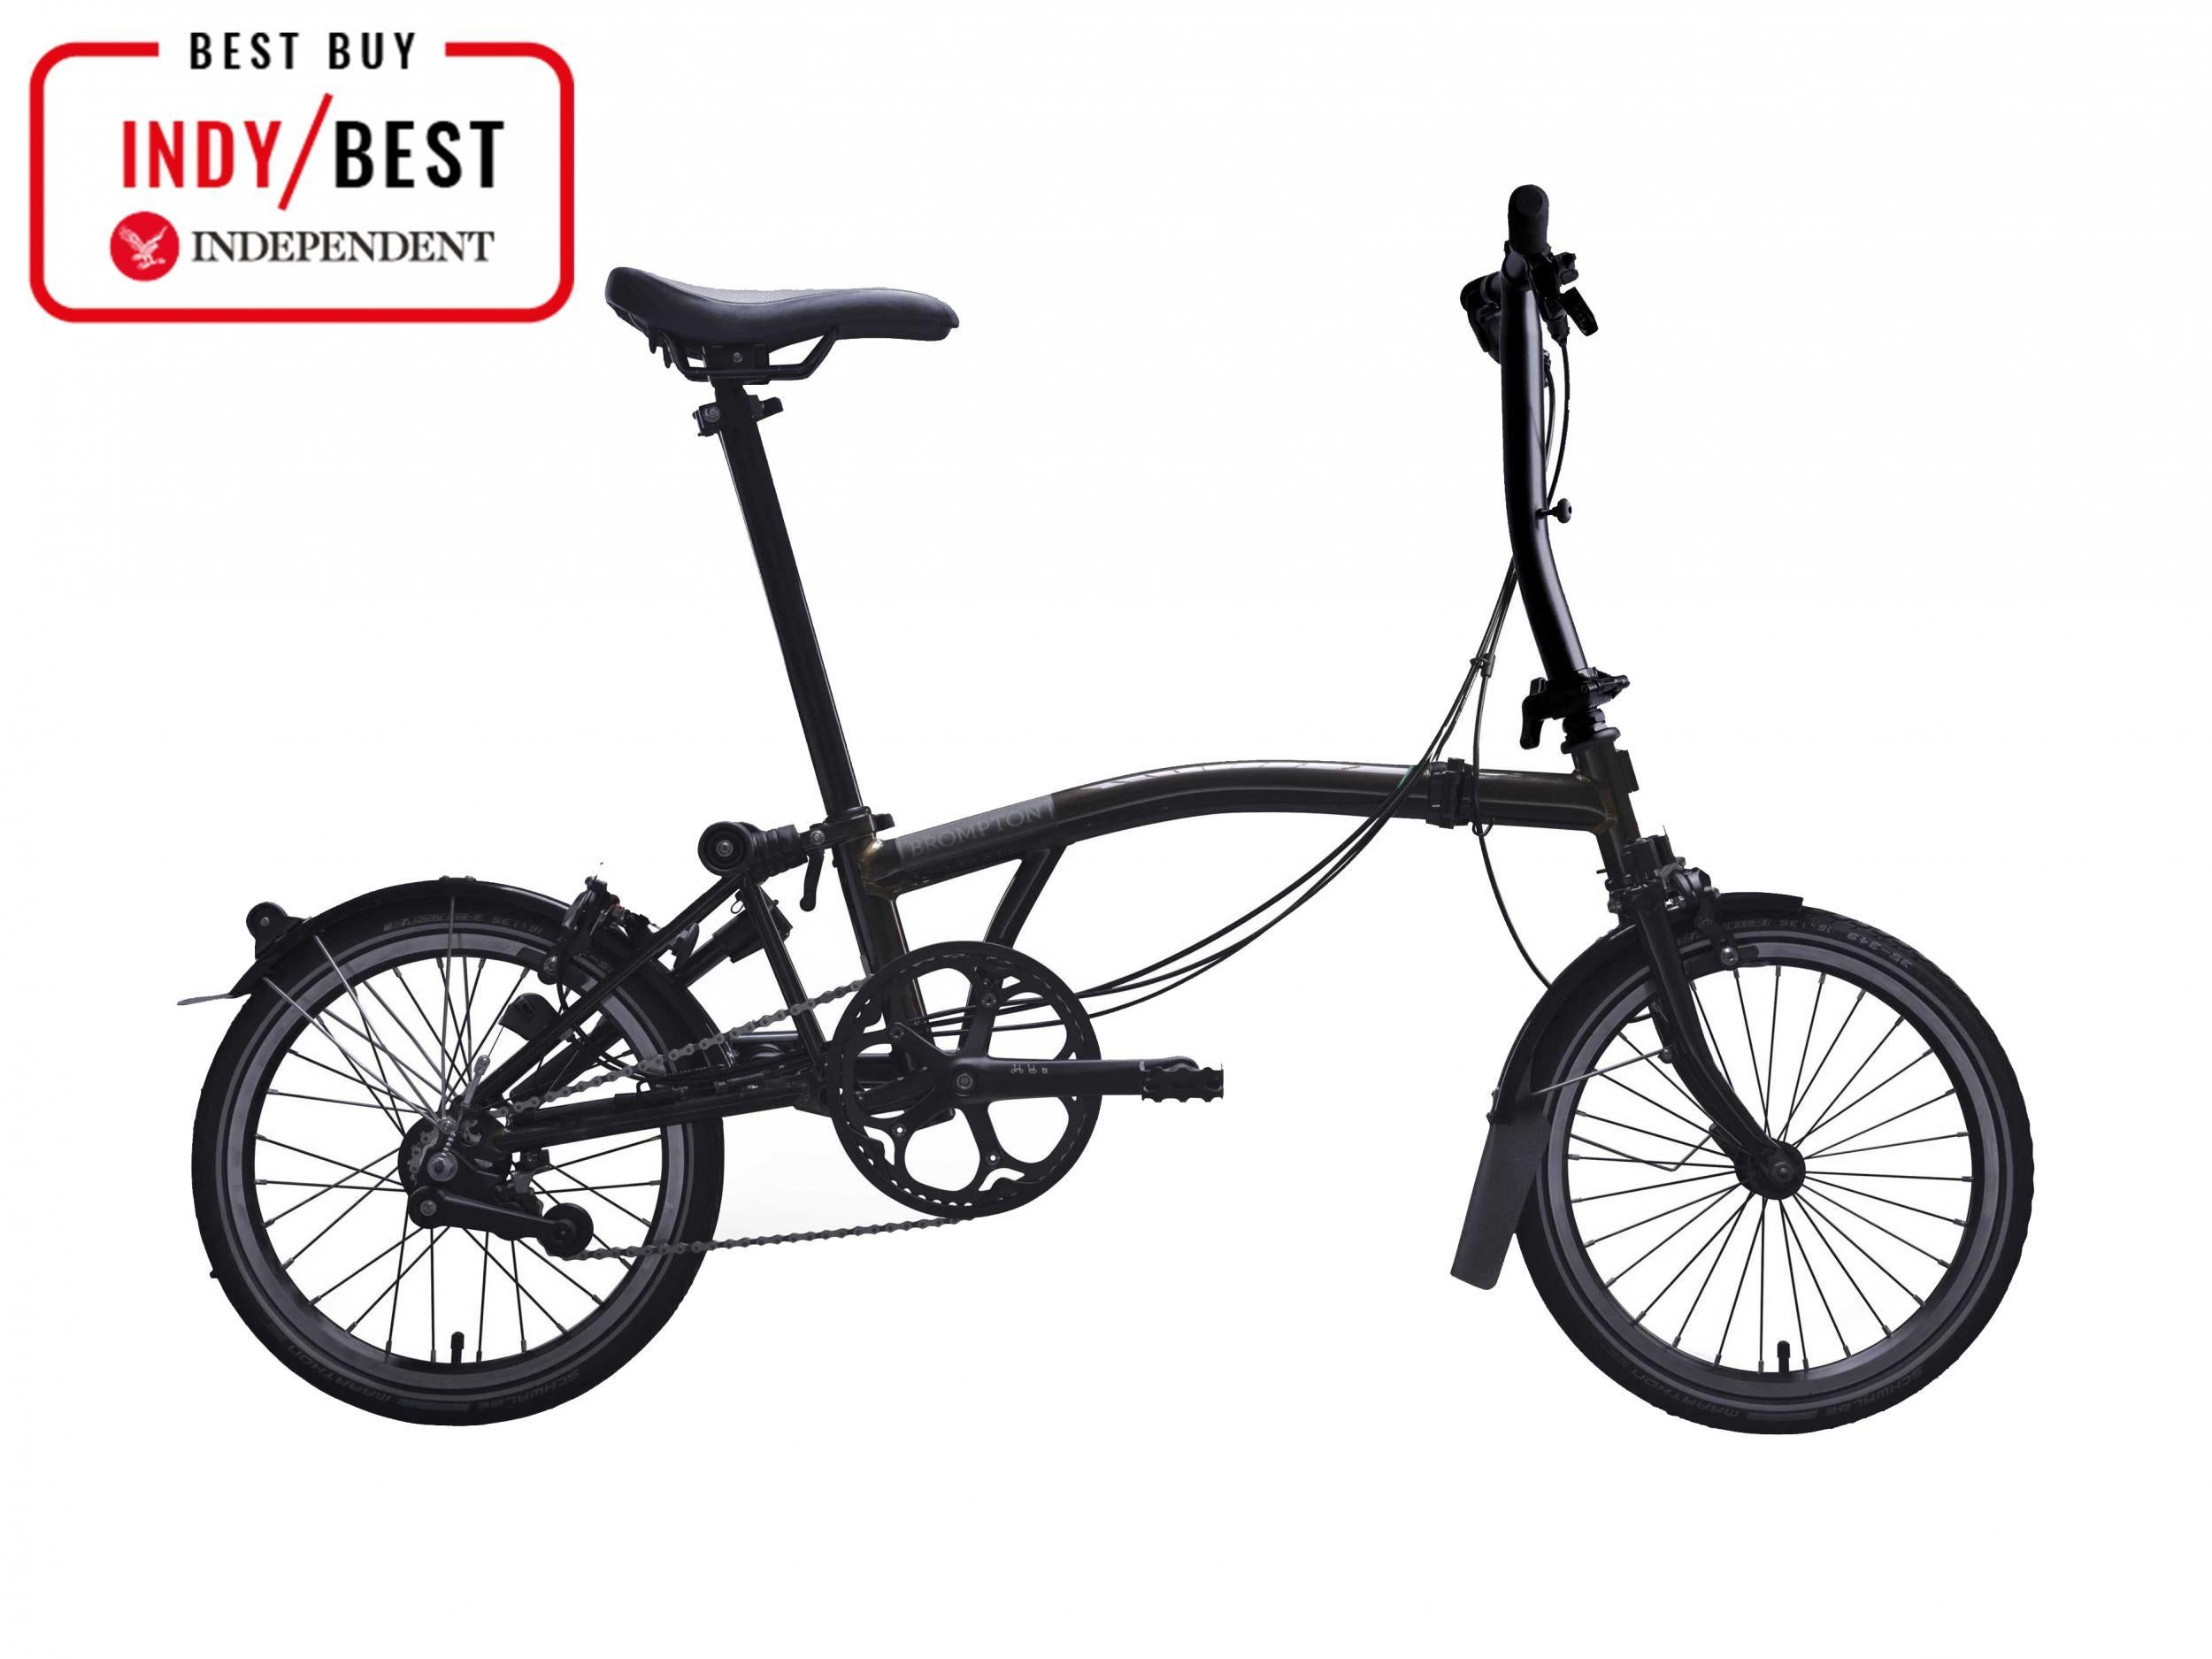 6d085031f2a 10 best folding bikes | The Independent